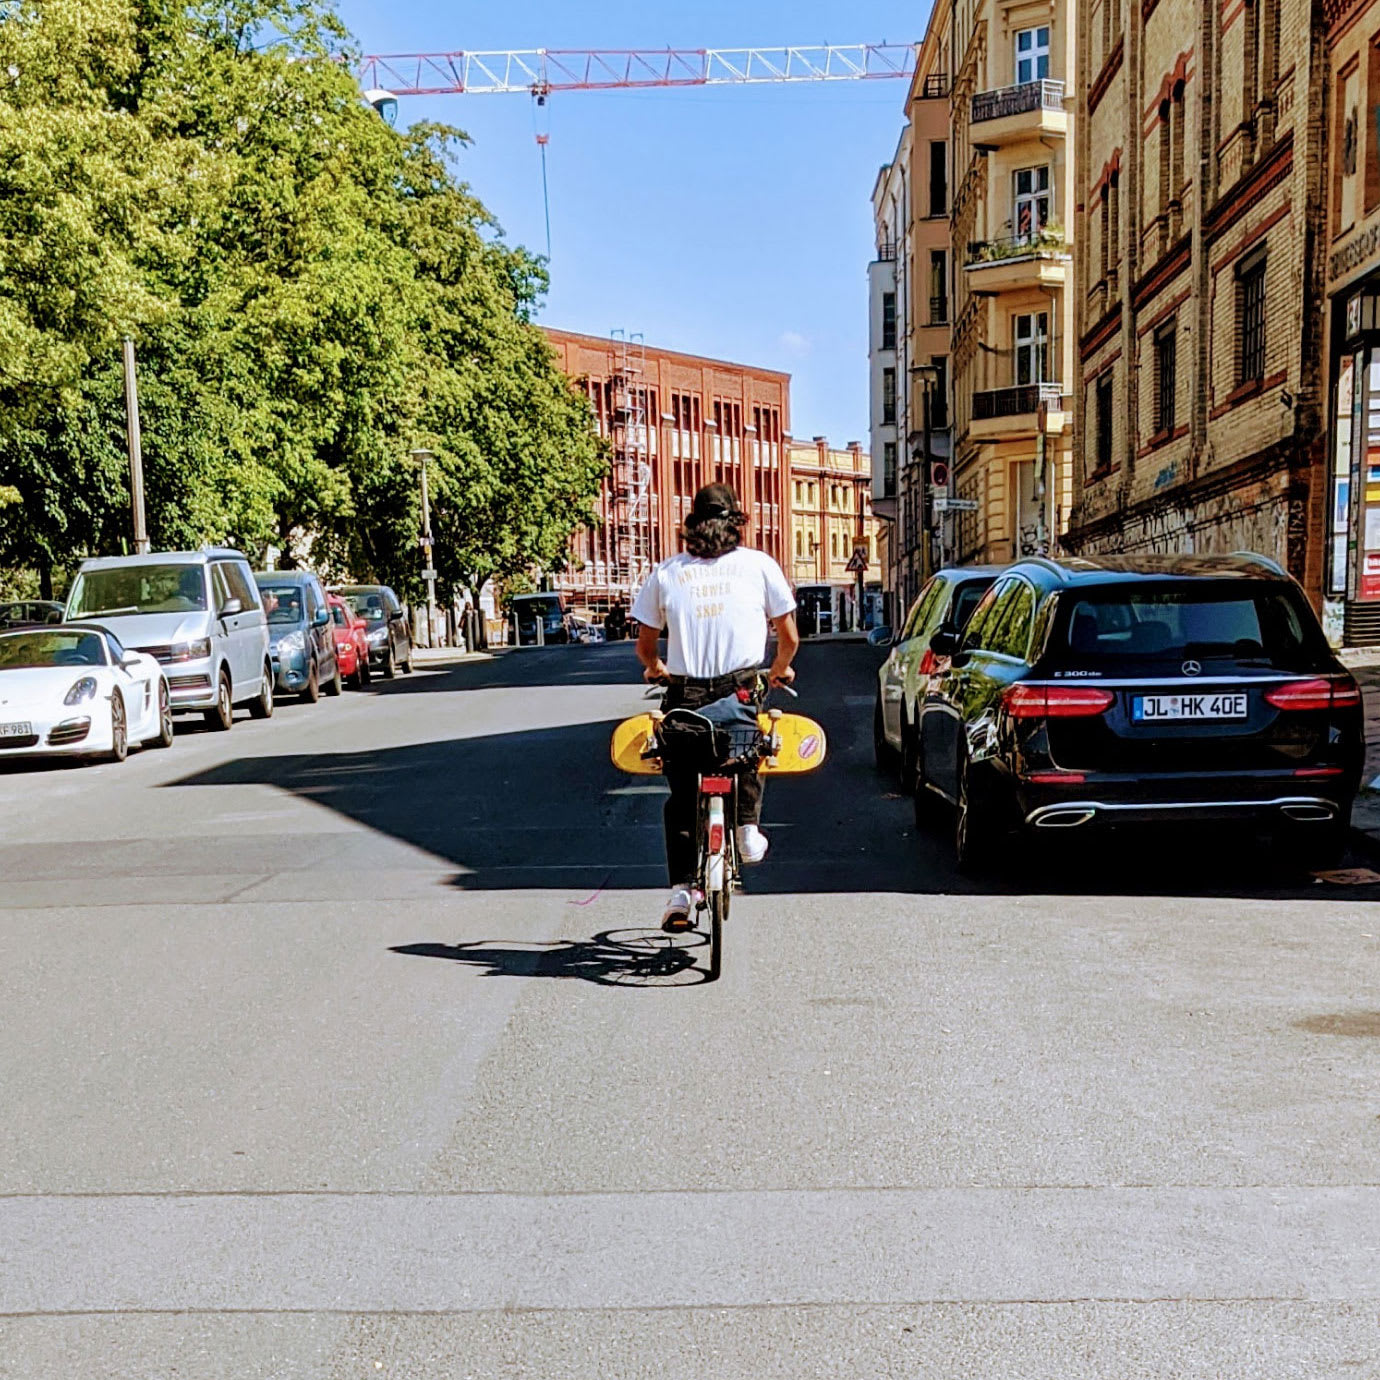 A person cycling down a city street.